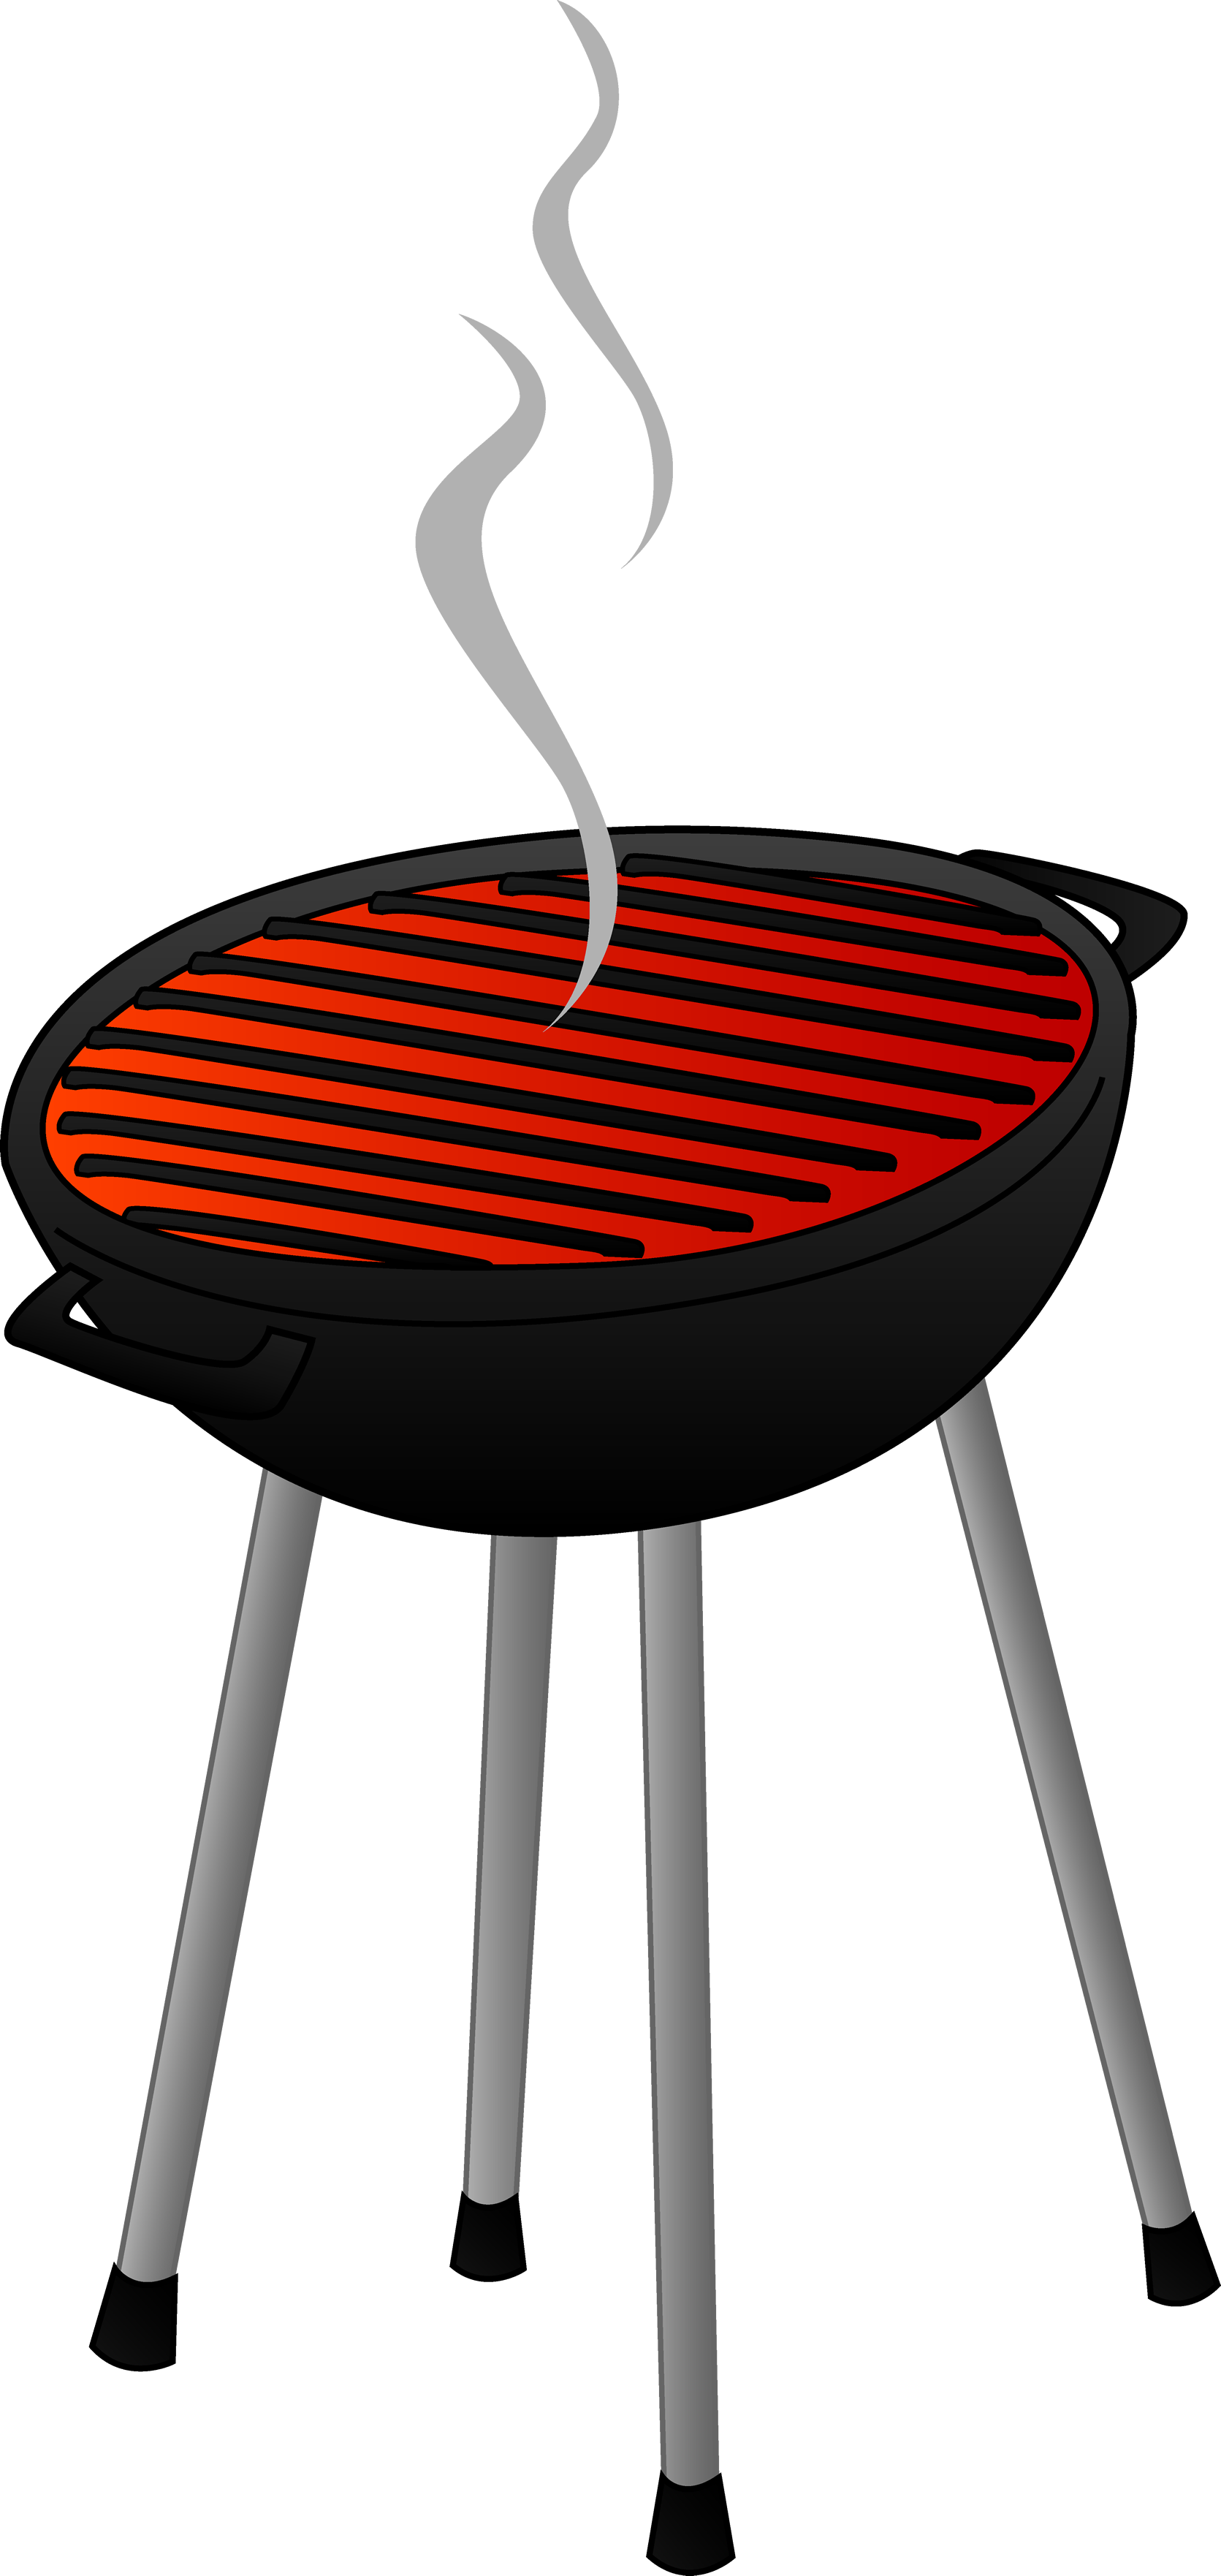 Grill clipart transparent background png black and white library Bbq transparent background clipart images gallery for free download ... png black and white library